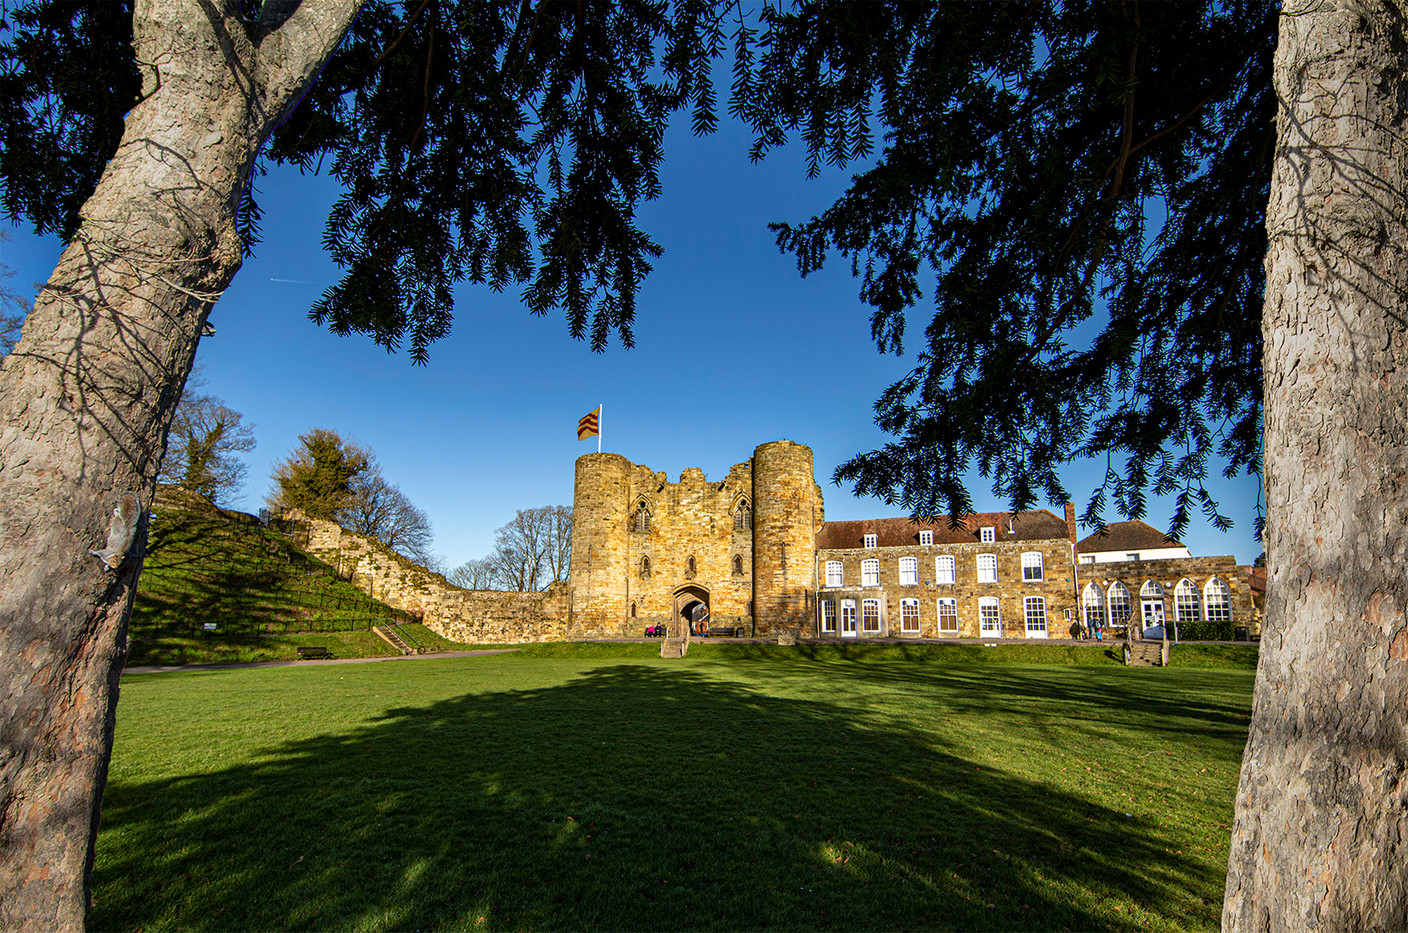 16 A SUNNY DAY AT THE CASTLE by Philip Easom